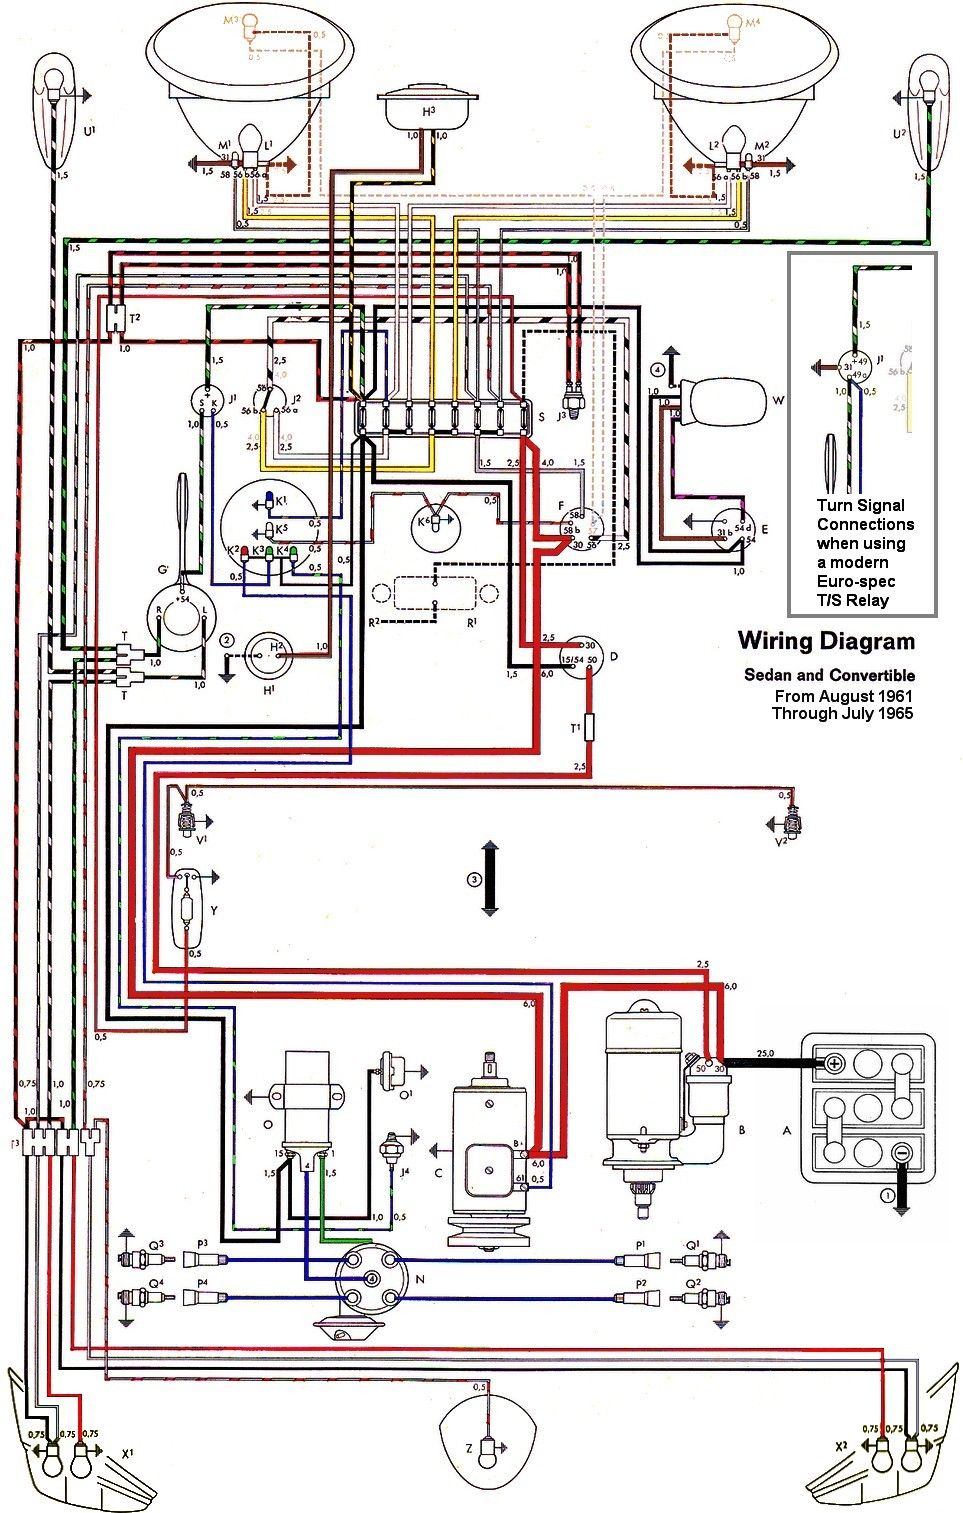 Air Cooled Vw Wiring Diagram | menu-traction wiring diagram library |  menu-traction.kivitour.itKivi Tour 2 guida in carrozzina